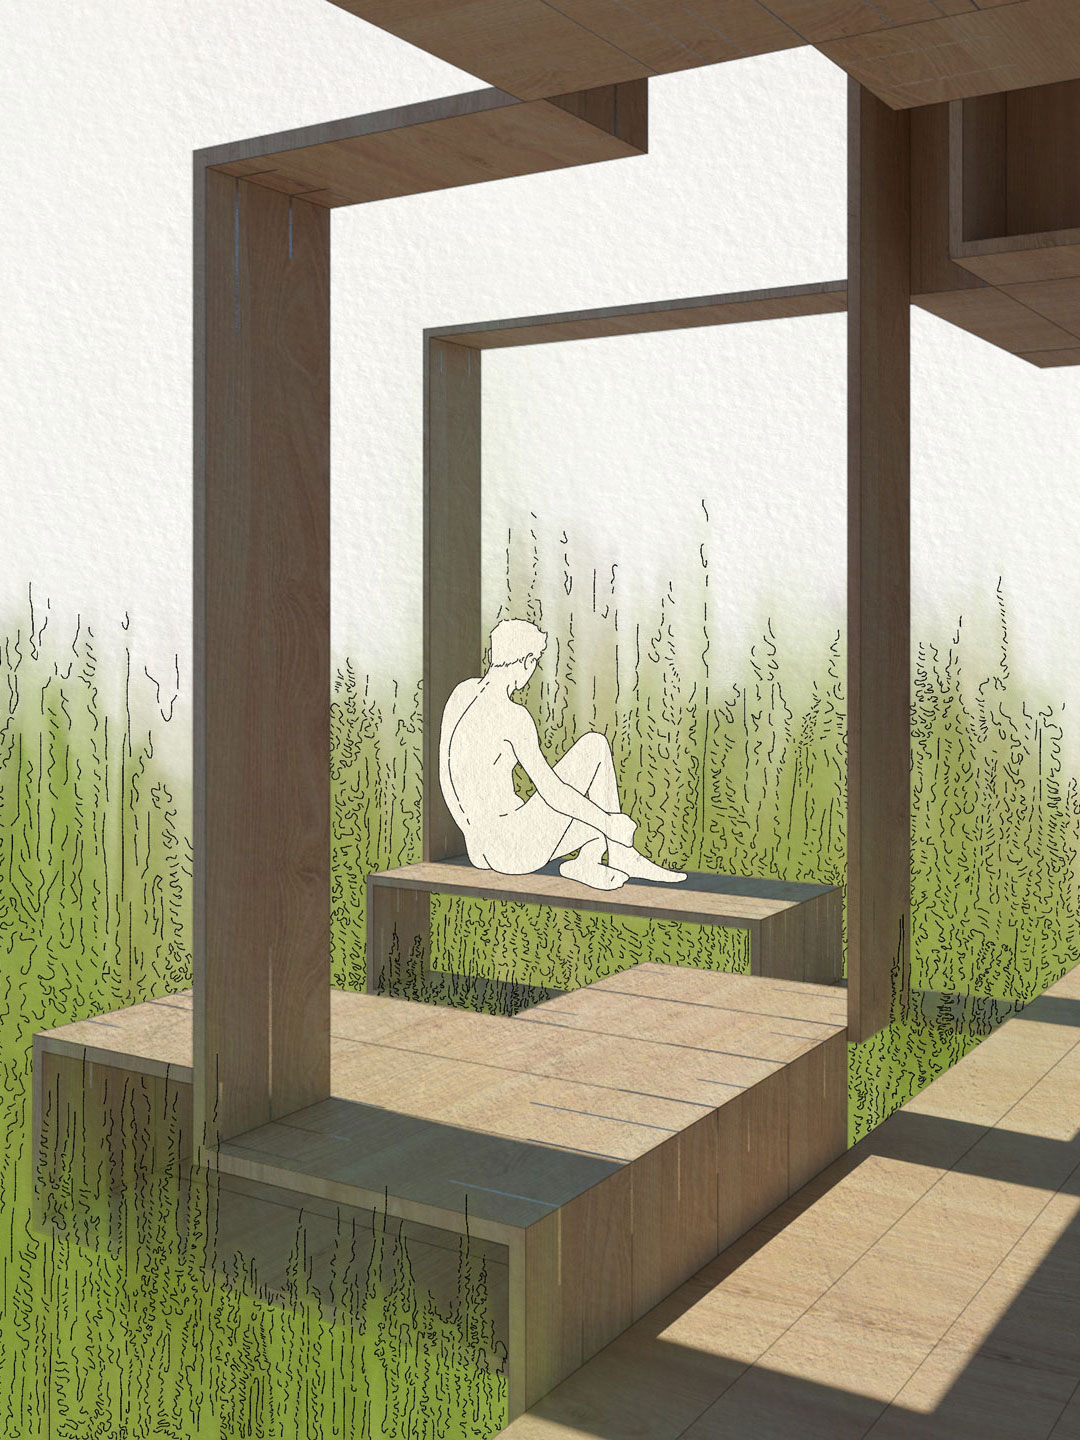 A perspective rendering of a pavilion. A man is sitting alone looking out into the distance.